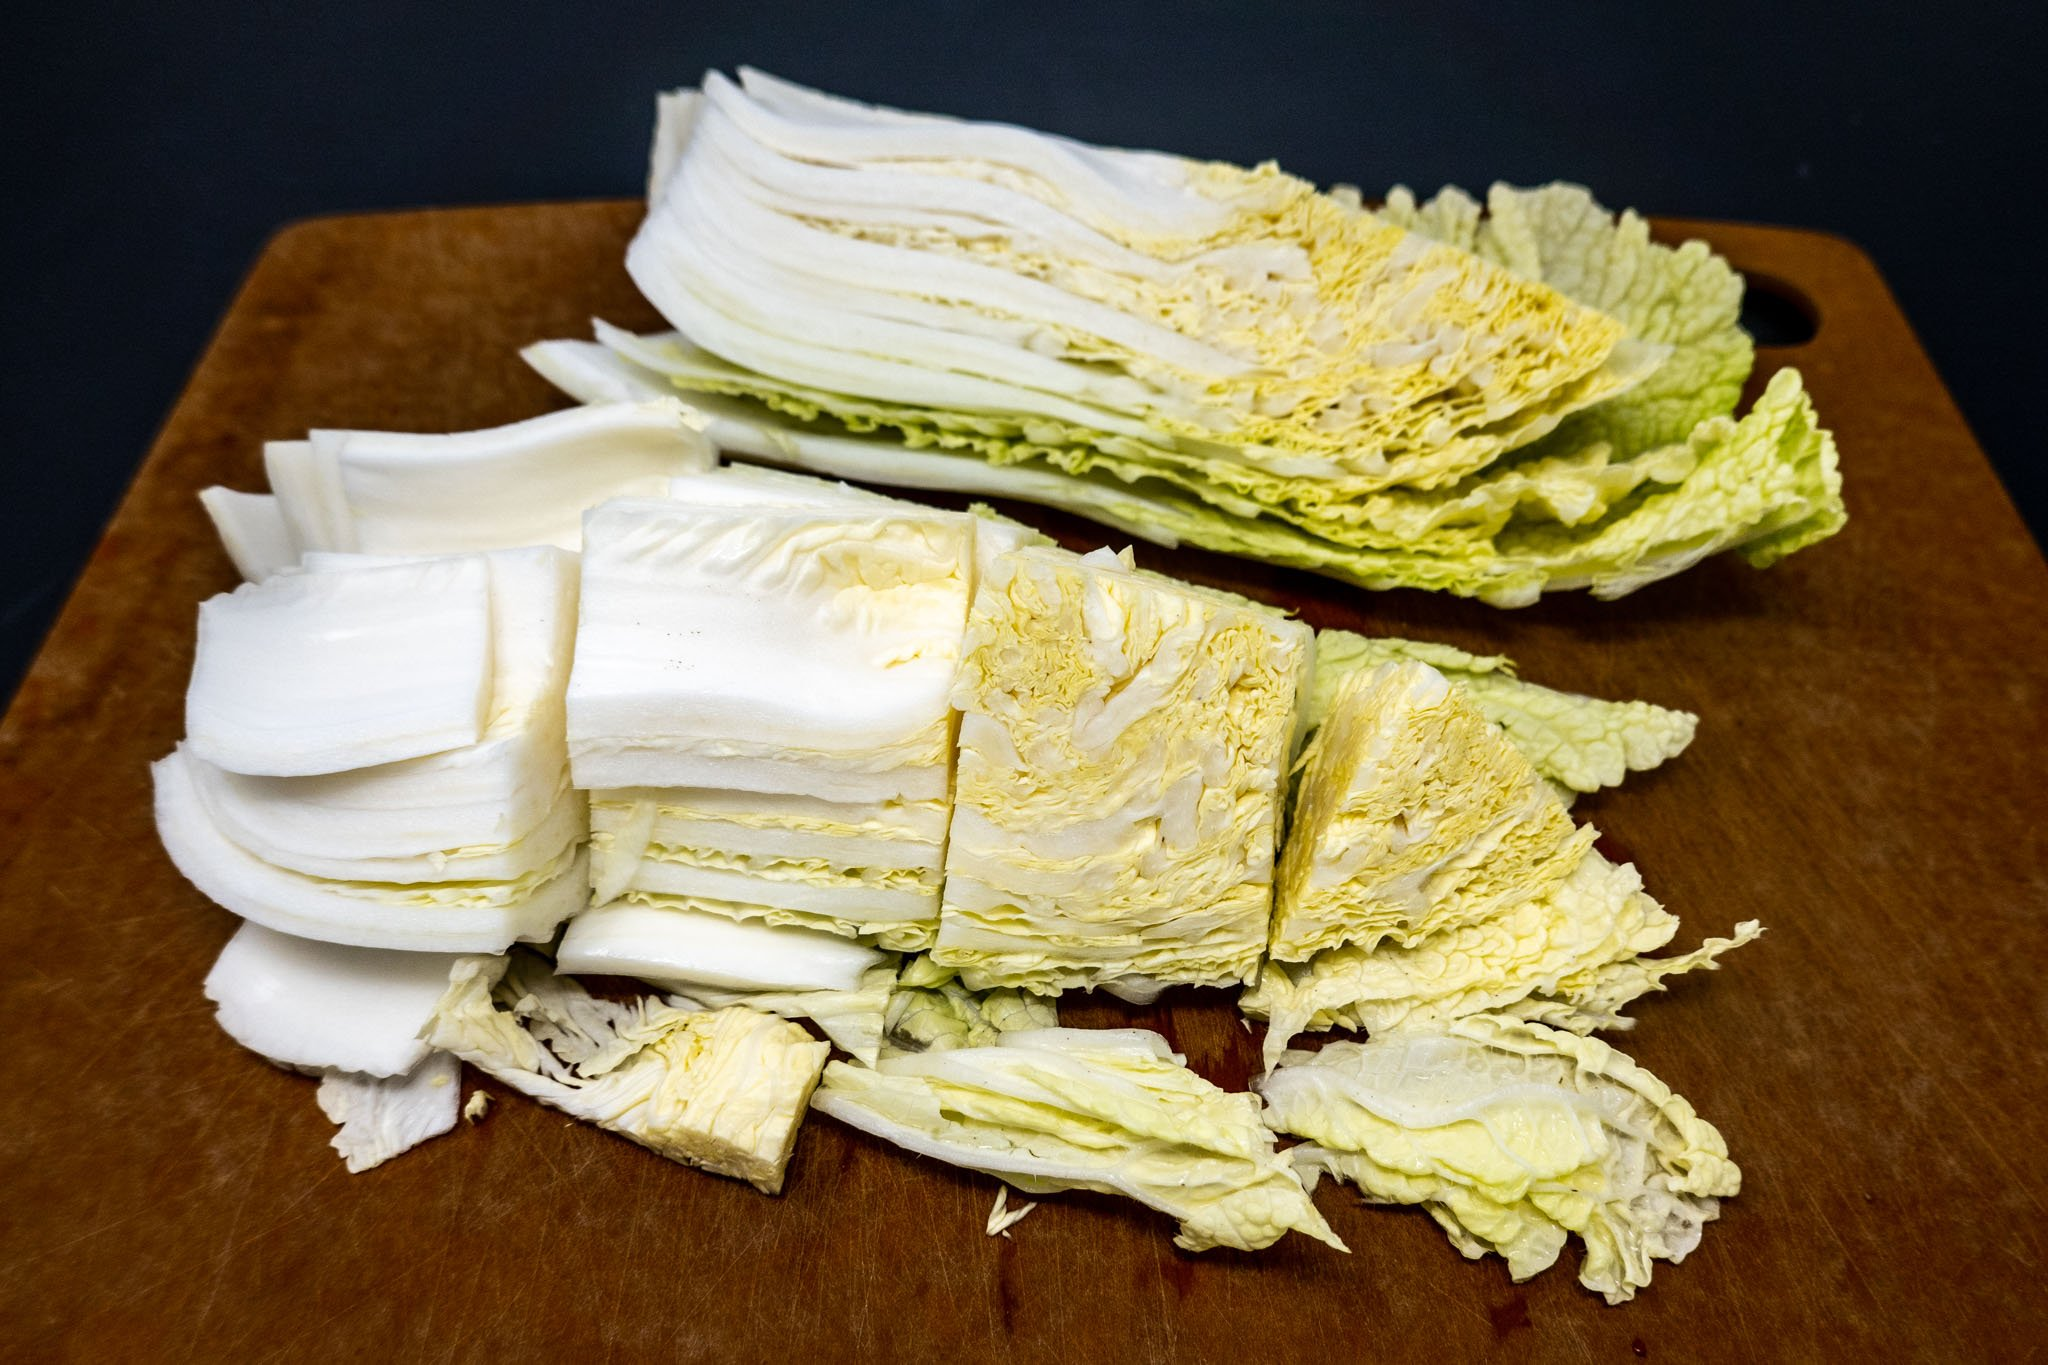 Napa cabbage (aka delicate cabbage) cut in pieces for the baechu kimchi recipe